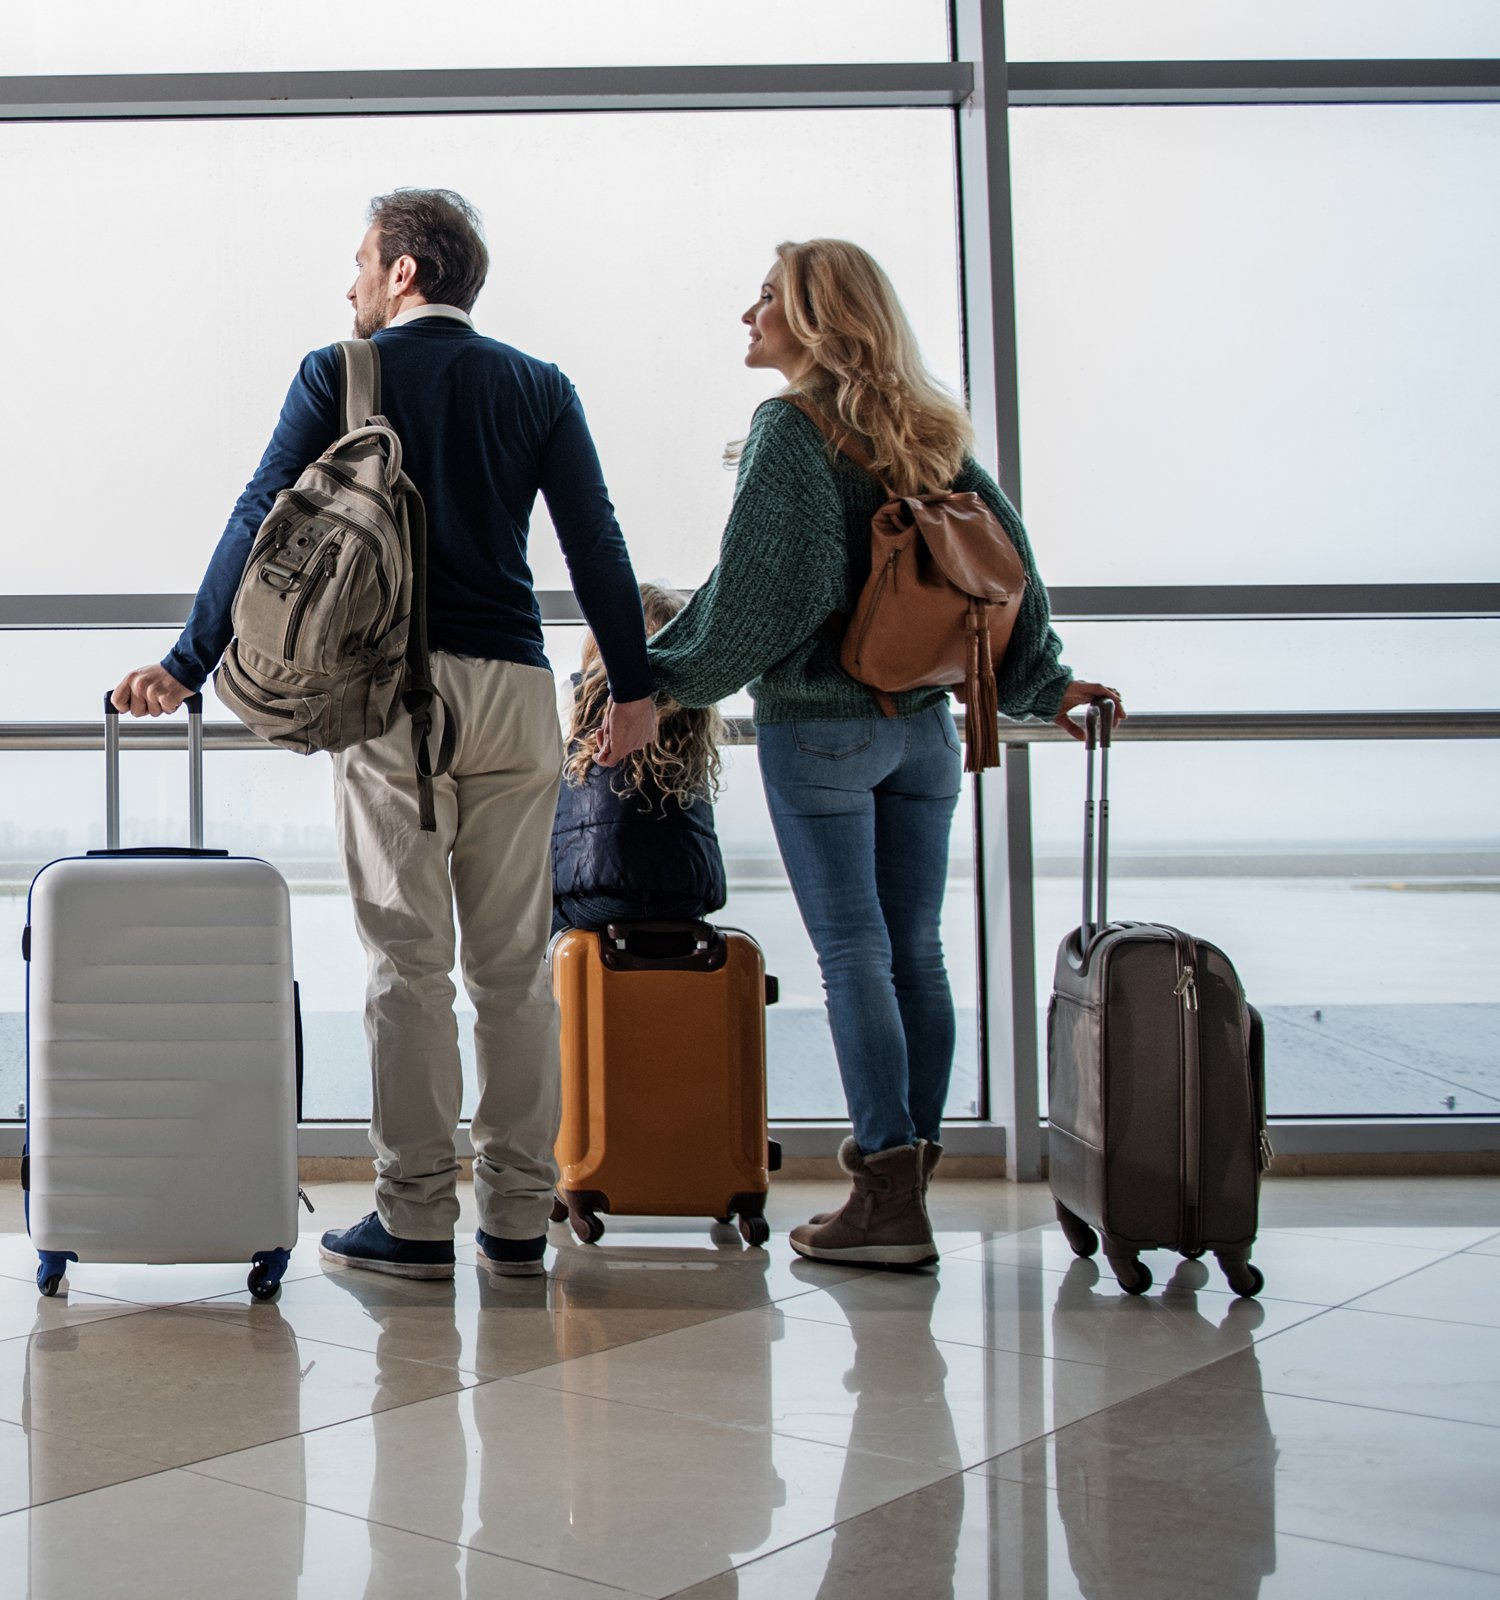 man and woman at airport with luggage looking out windows